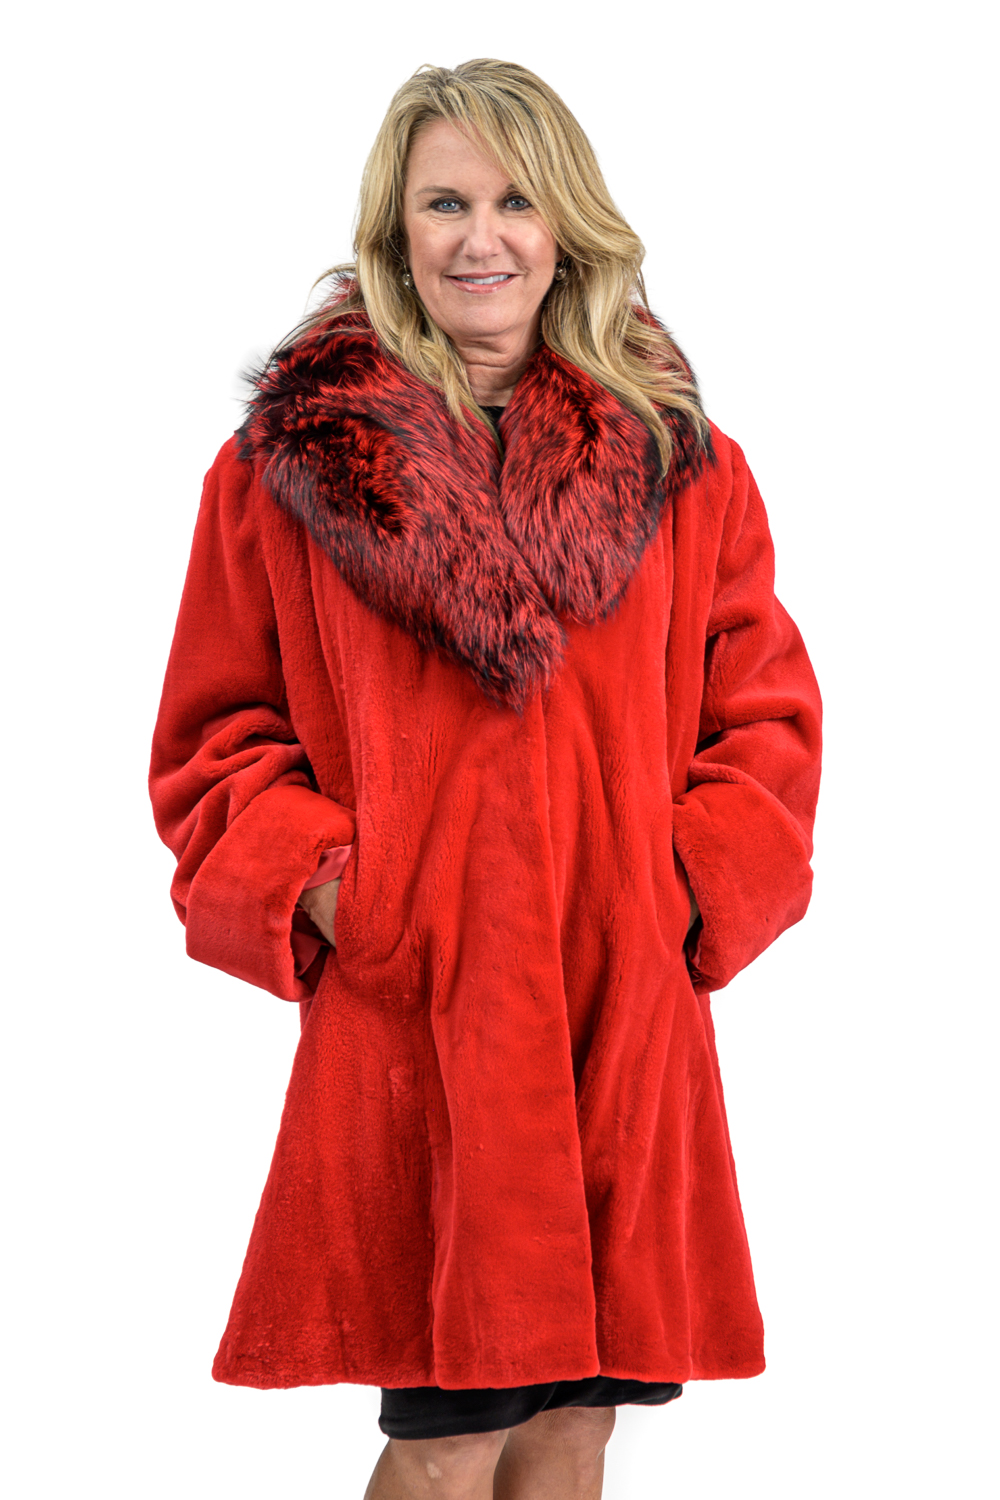 W16 2 Red Sheared Mink Fur Coat with Fox